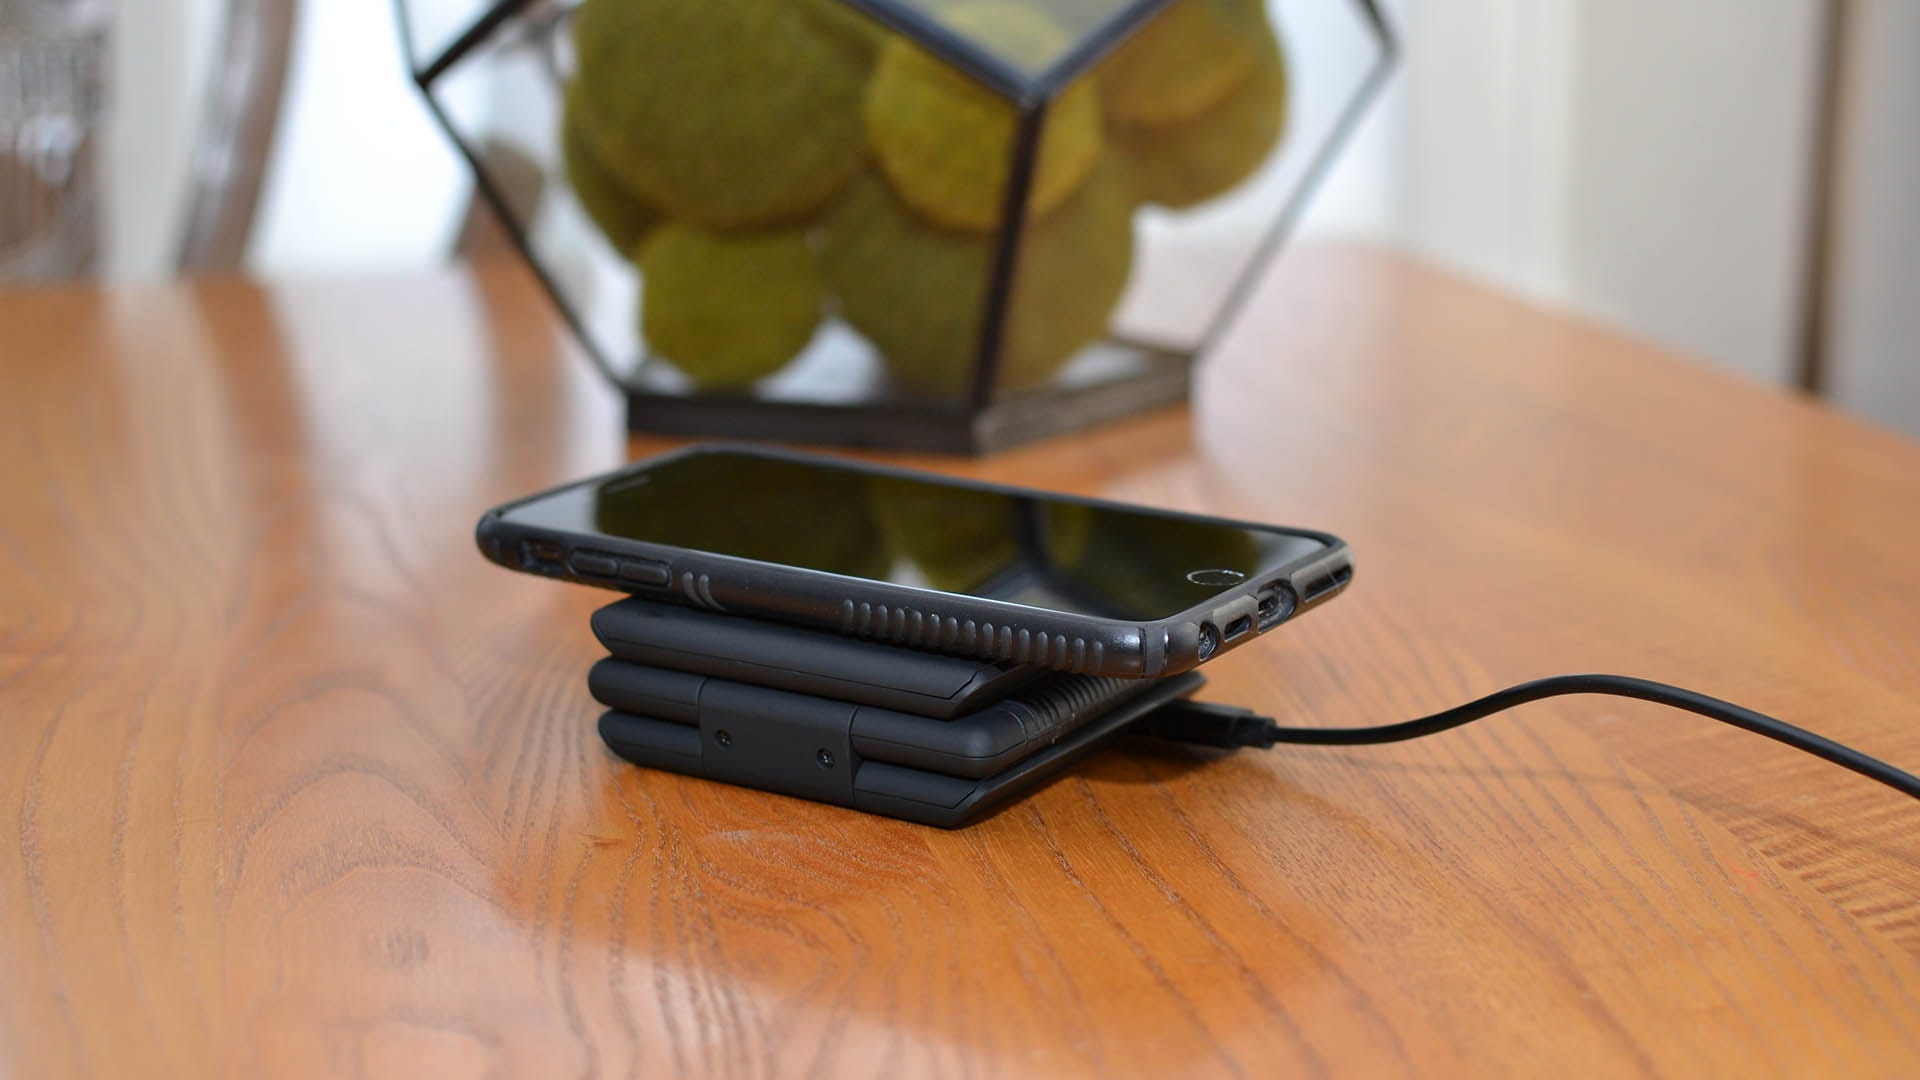 Unravel charger in folded compact form